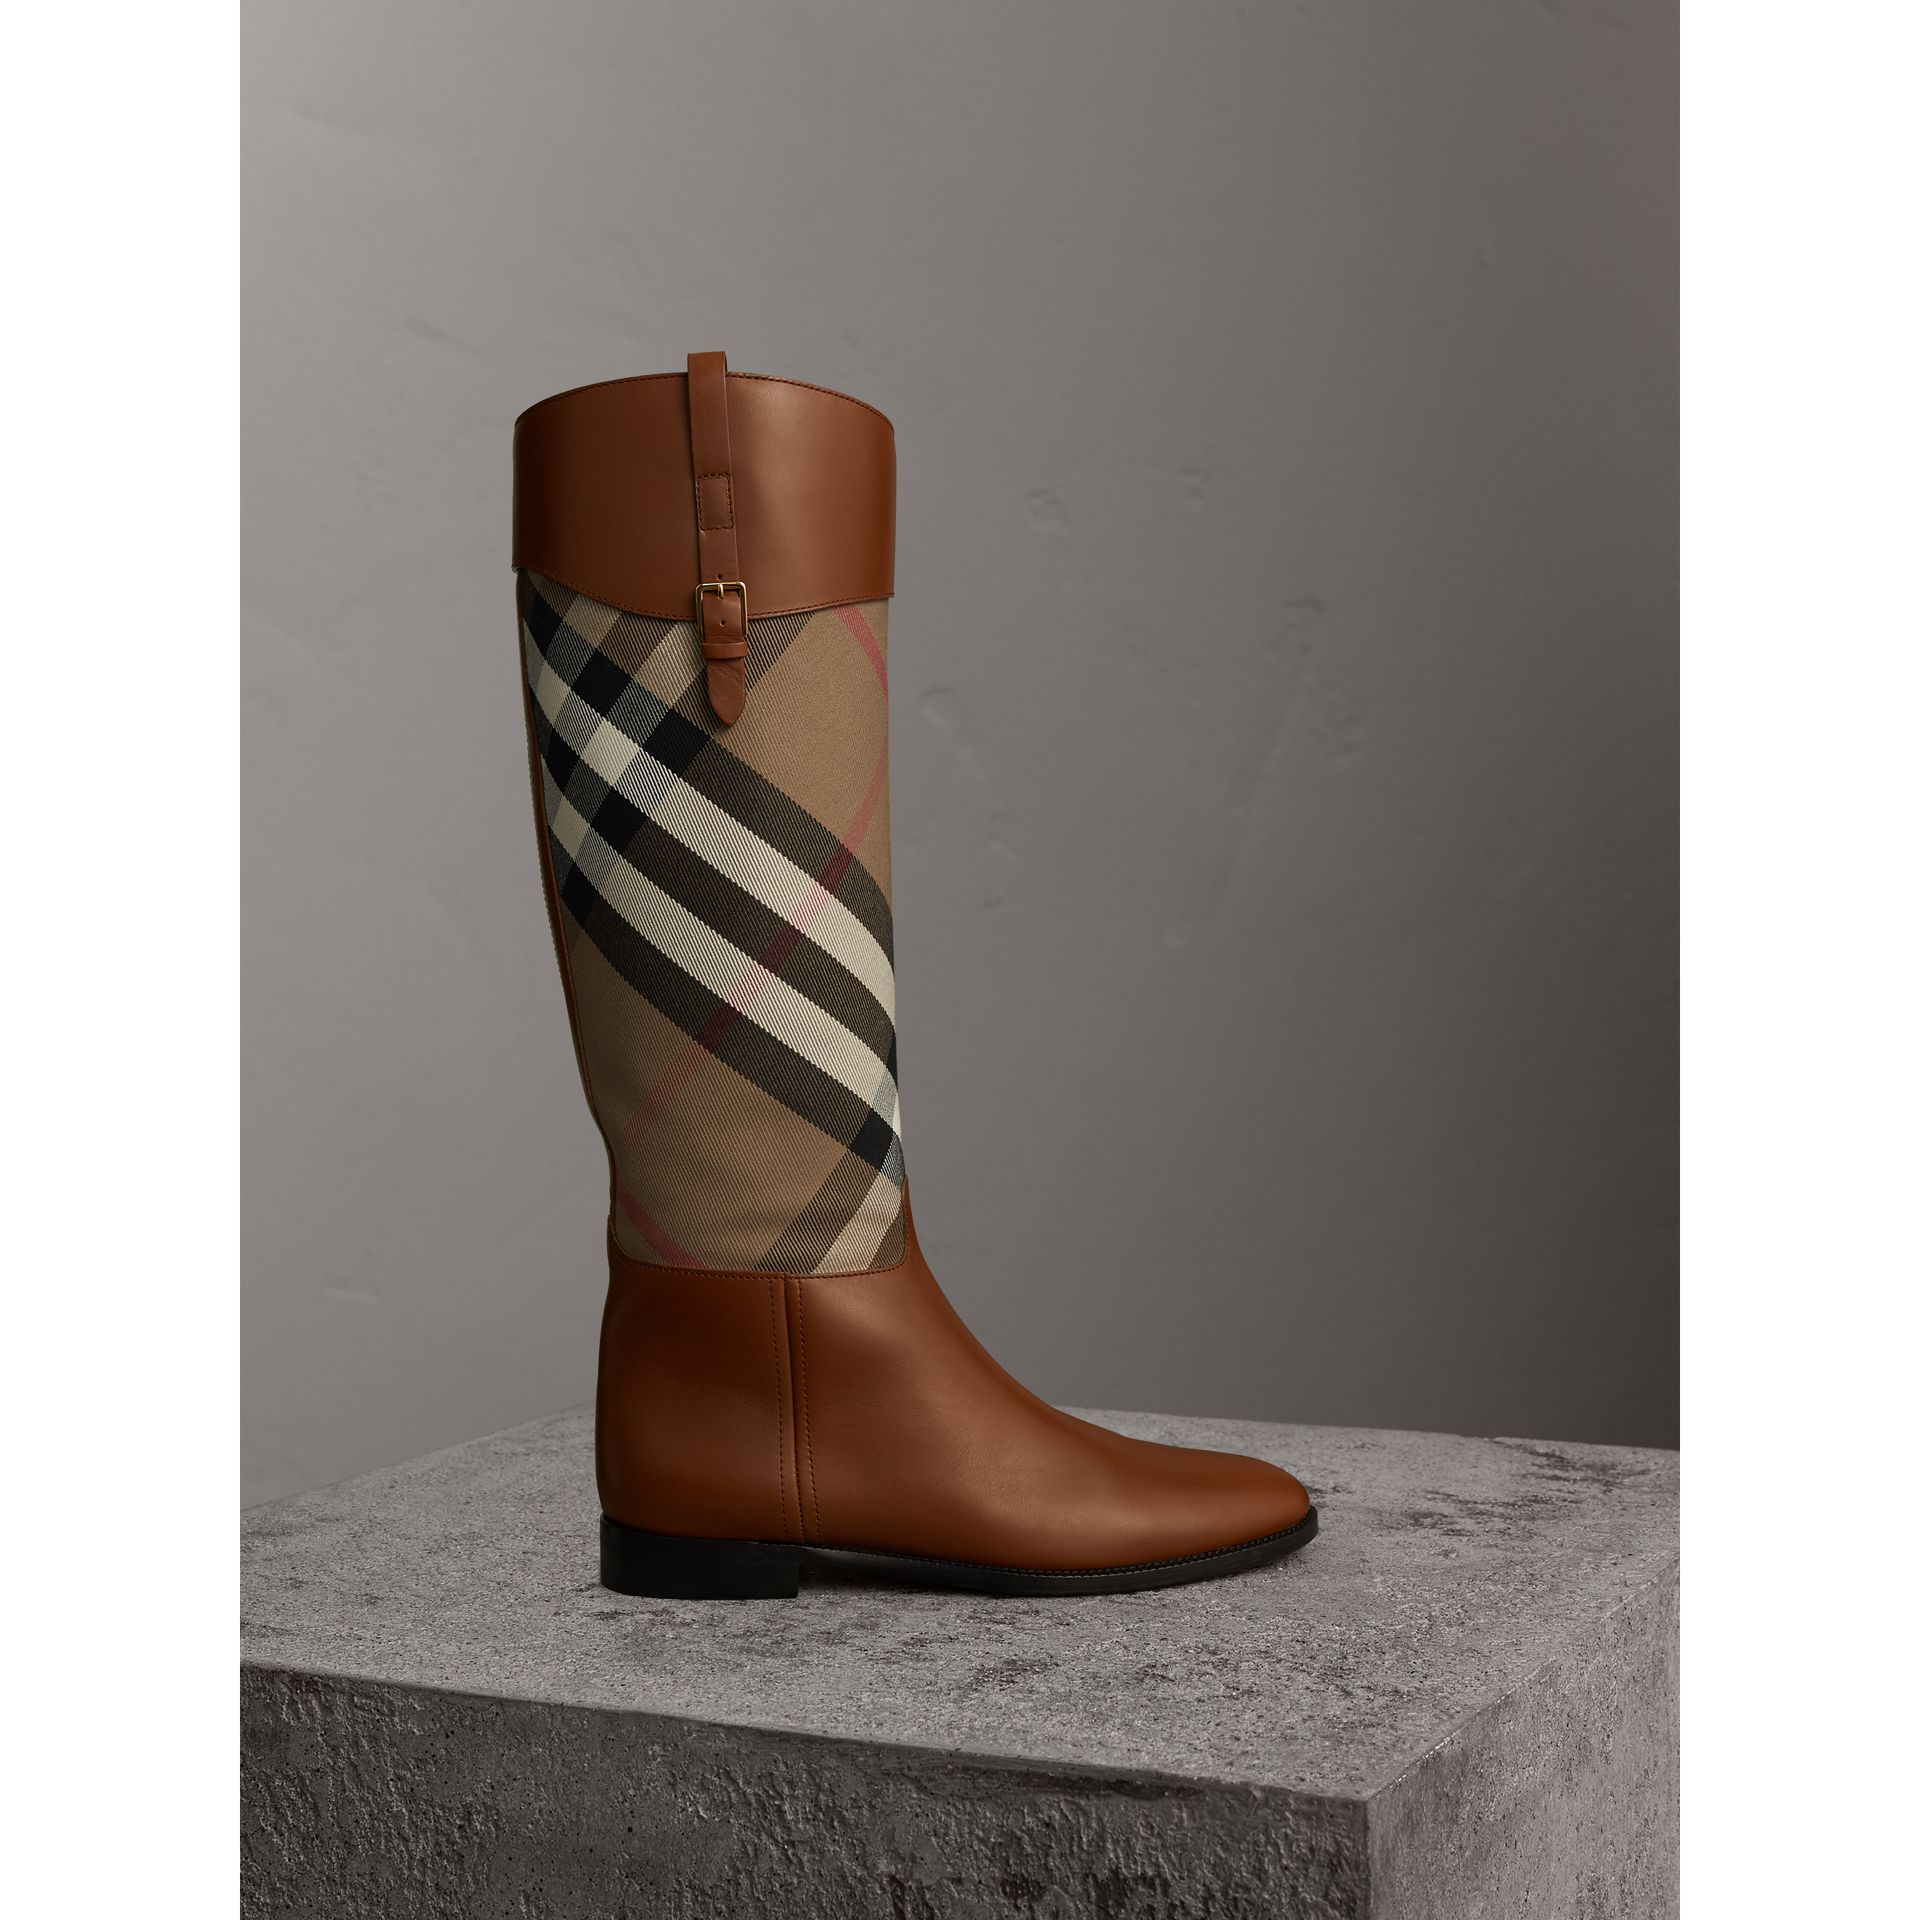 House Check and Leather Riding Boots in Chestnut - Women | Burberry - gallery image 1